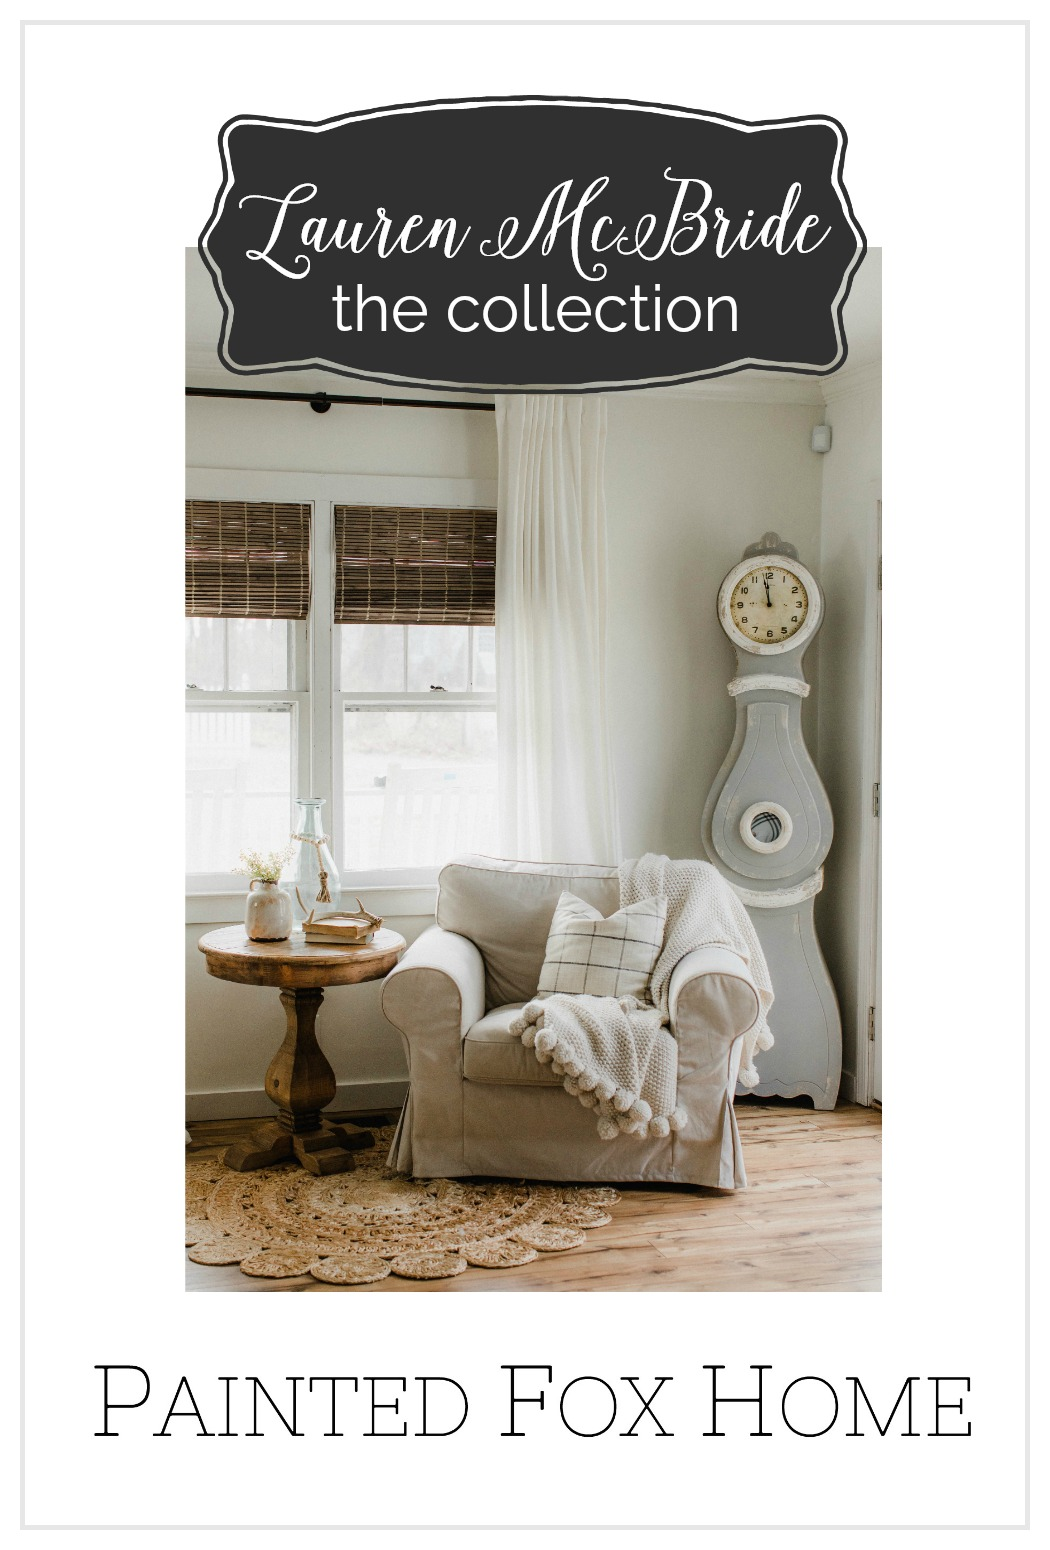 Life and style blogger Lauren McBride teams up with Painted Fox Home for the Lauren McBride curated collection, available today!